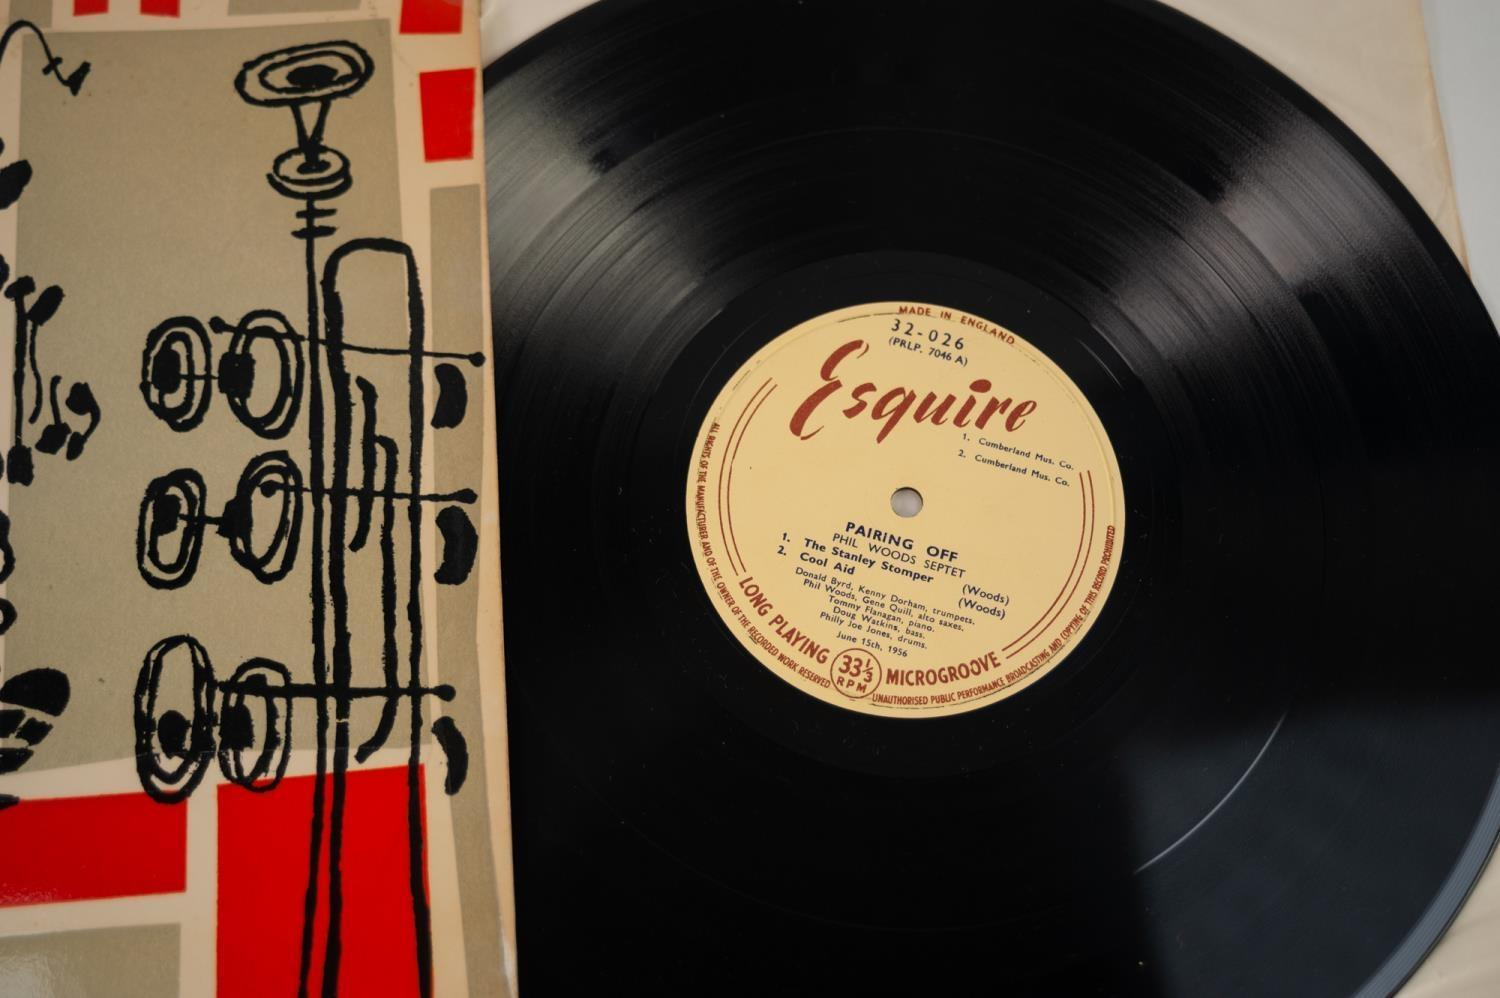 JAZZ, VINYL RECORDS- B IS FOR DONALD BYRD/JACKIE MCLEAN QUINTET-LIGHTS OUT, Esquire (32-041) UK - Image 3 of 6